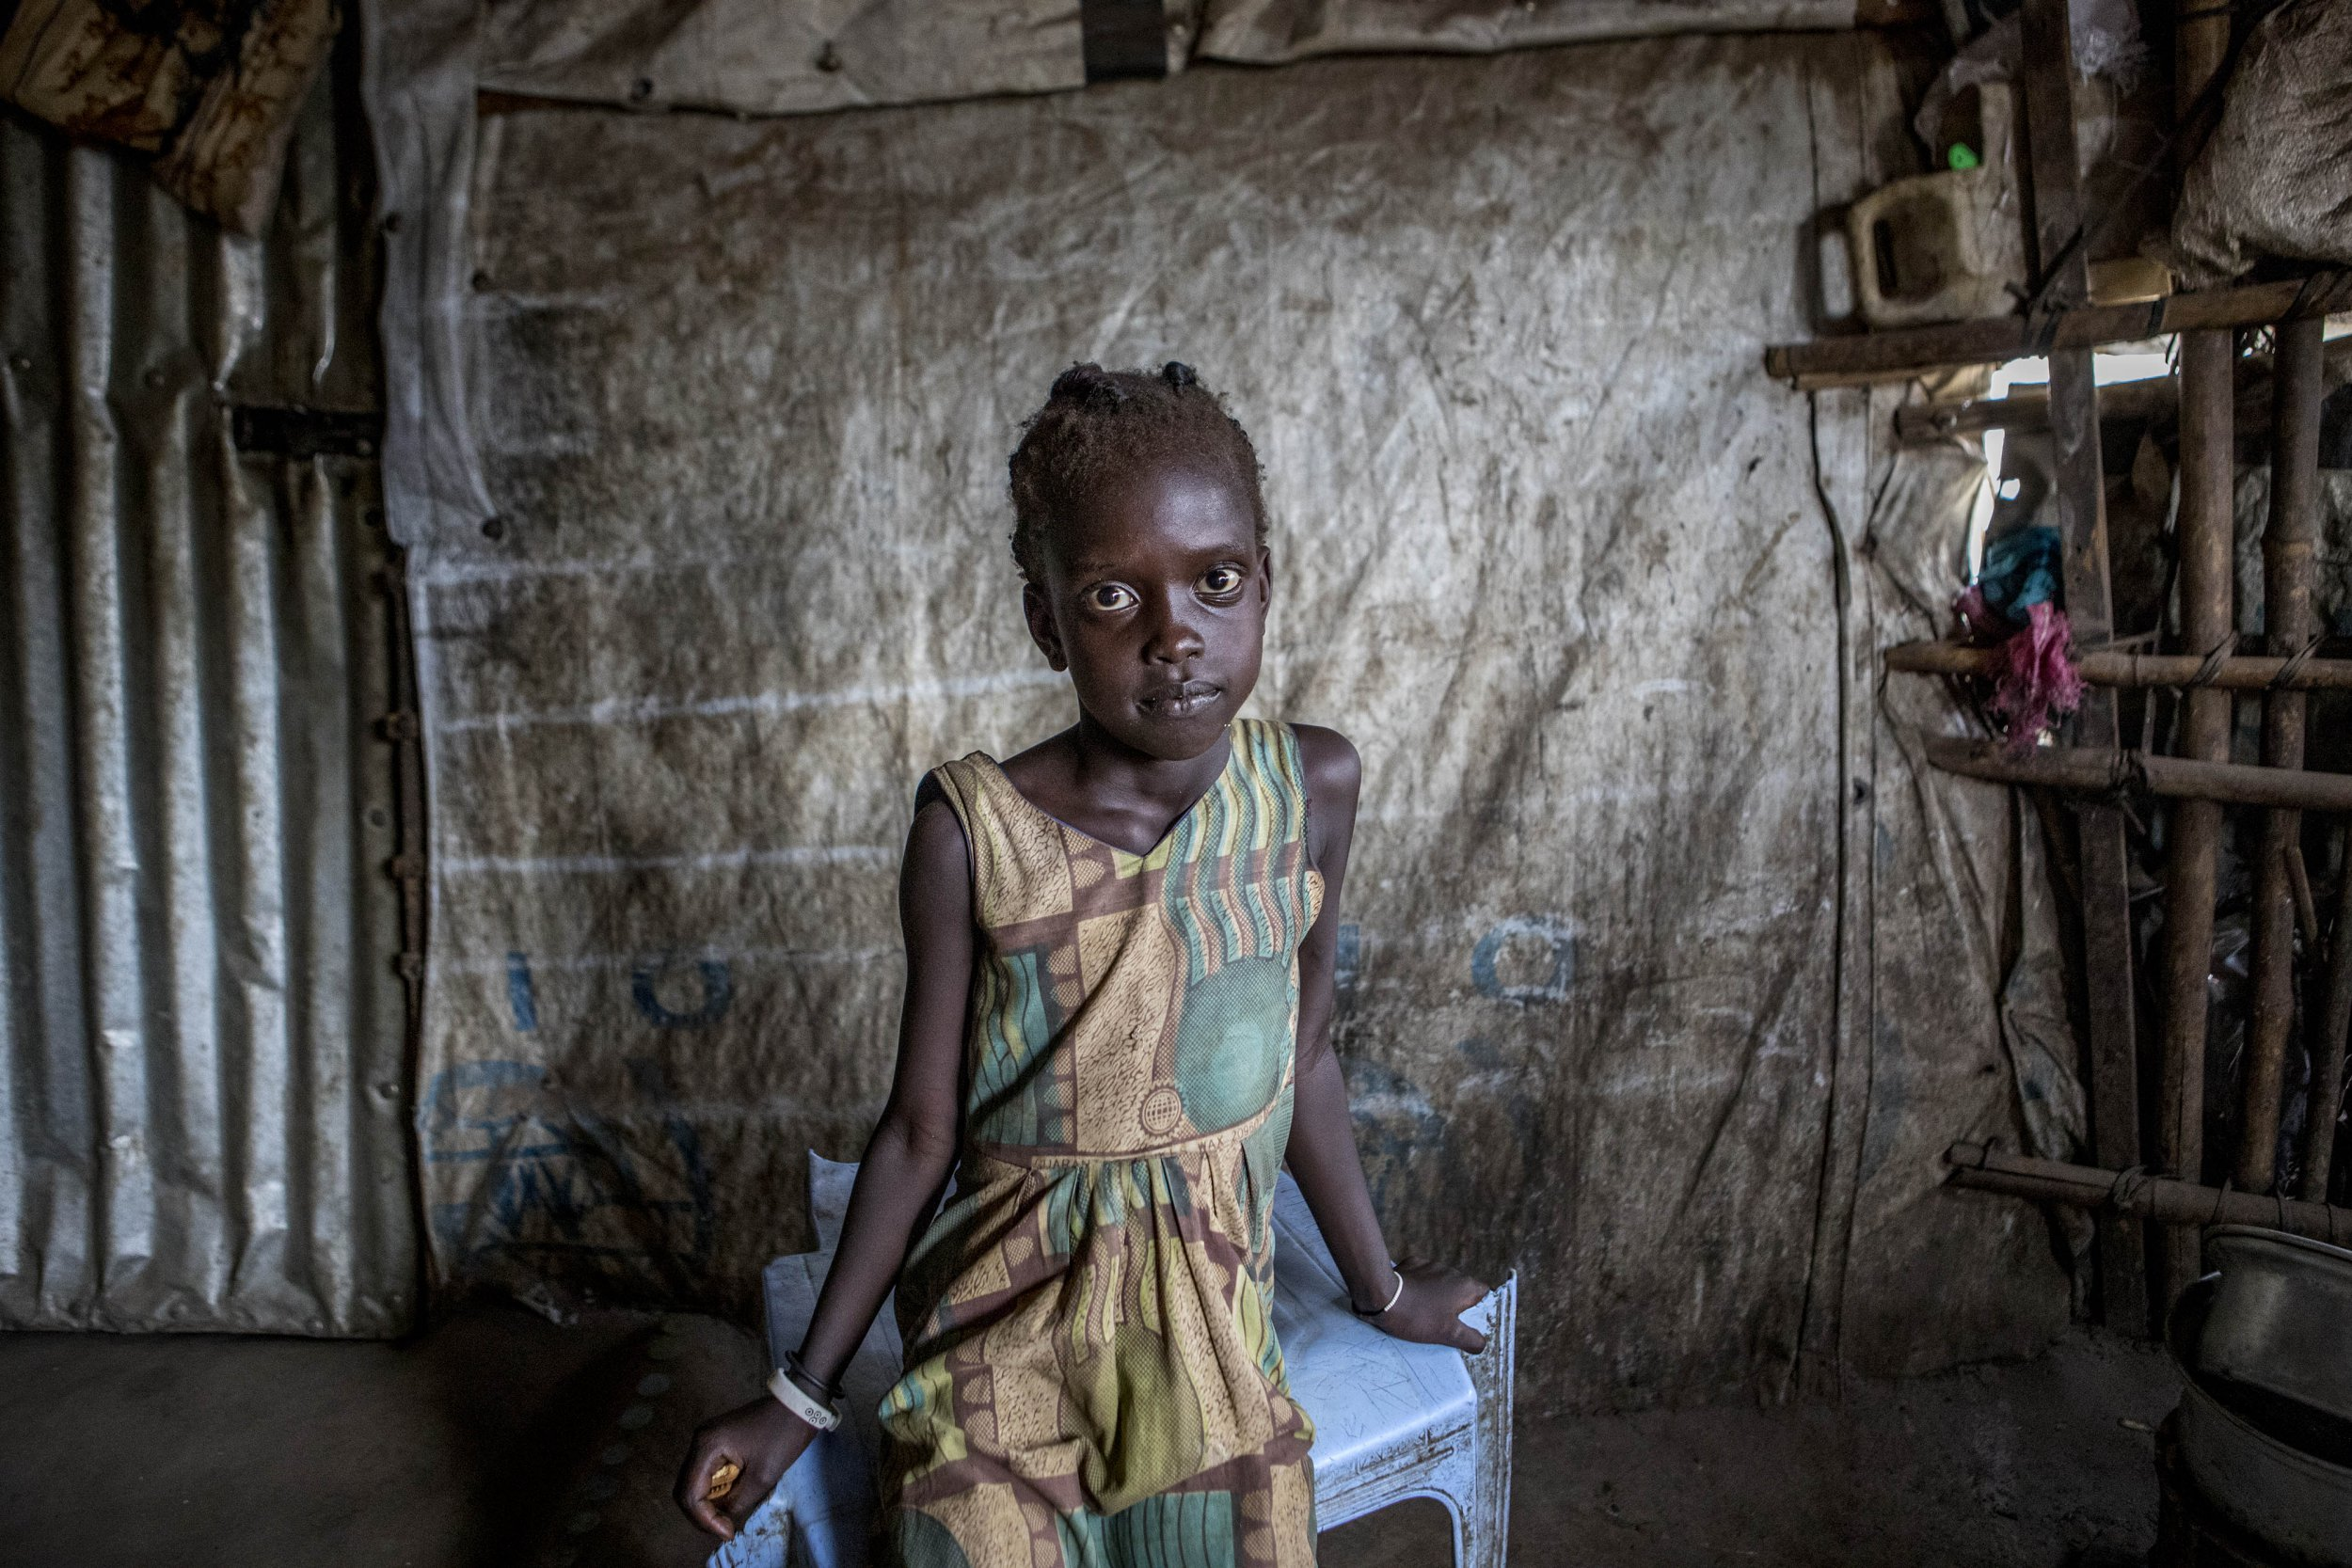 Moving images show the fall-out of war on vulnerable children